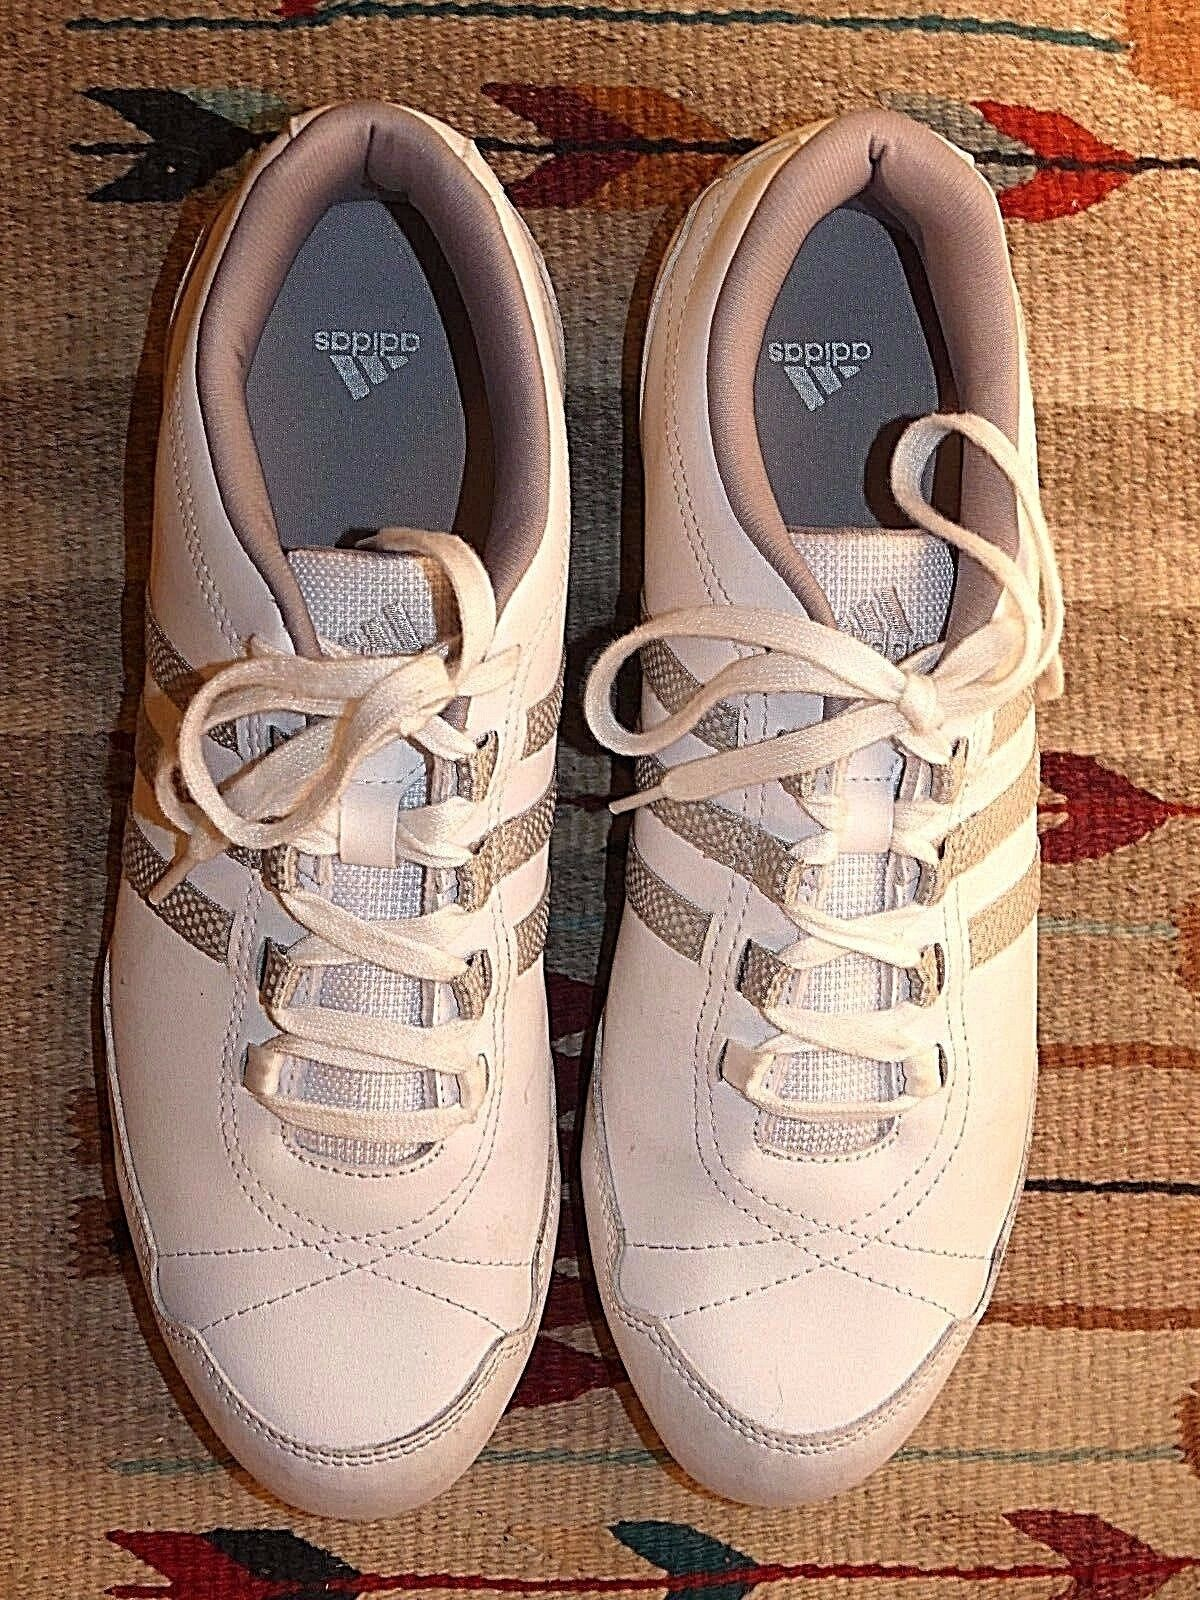 Women's Adidas cool White Leather Casual cool Adidas Sneaker Sz. 9 MINTY! bc644b